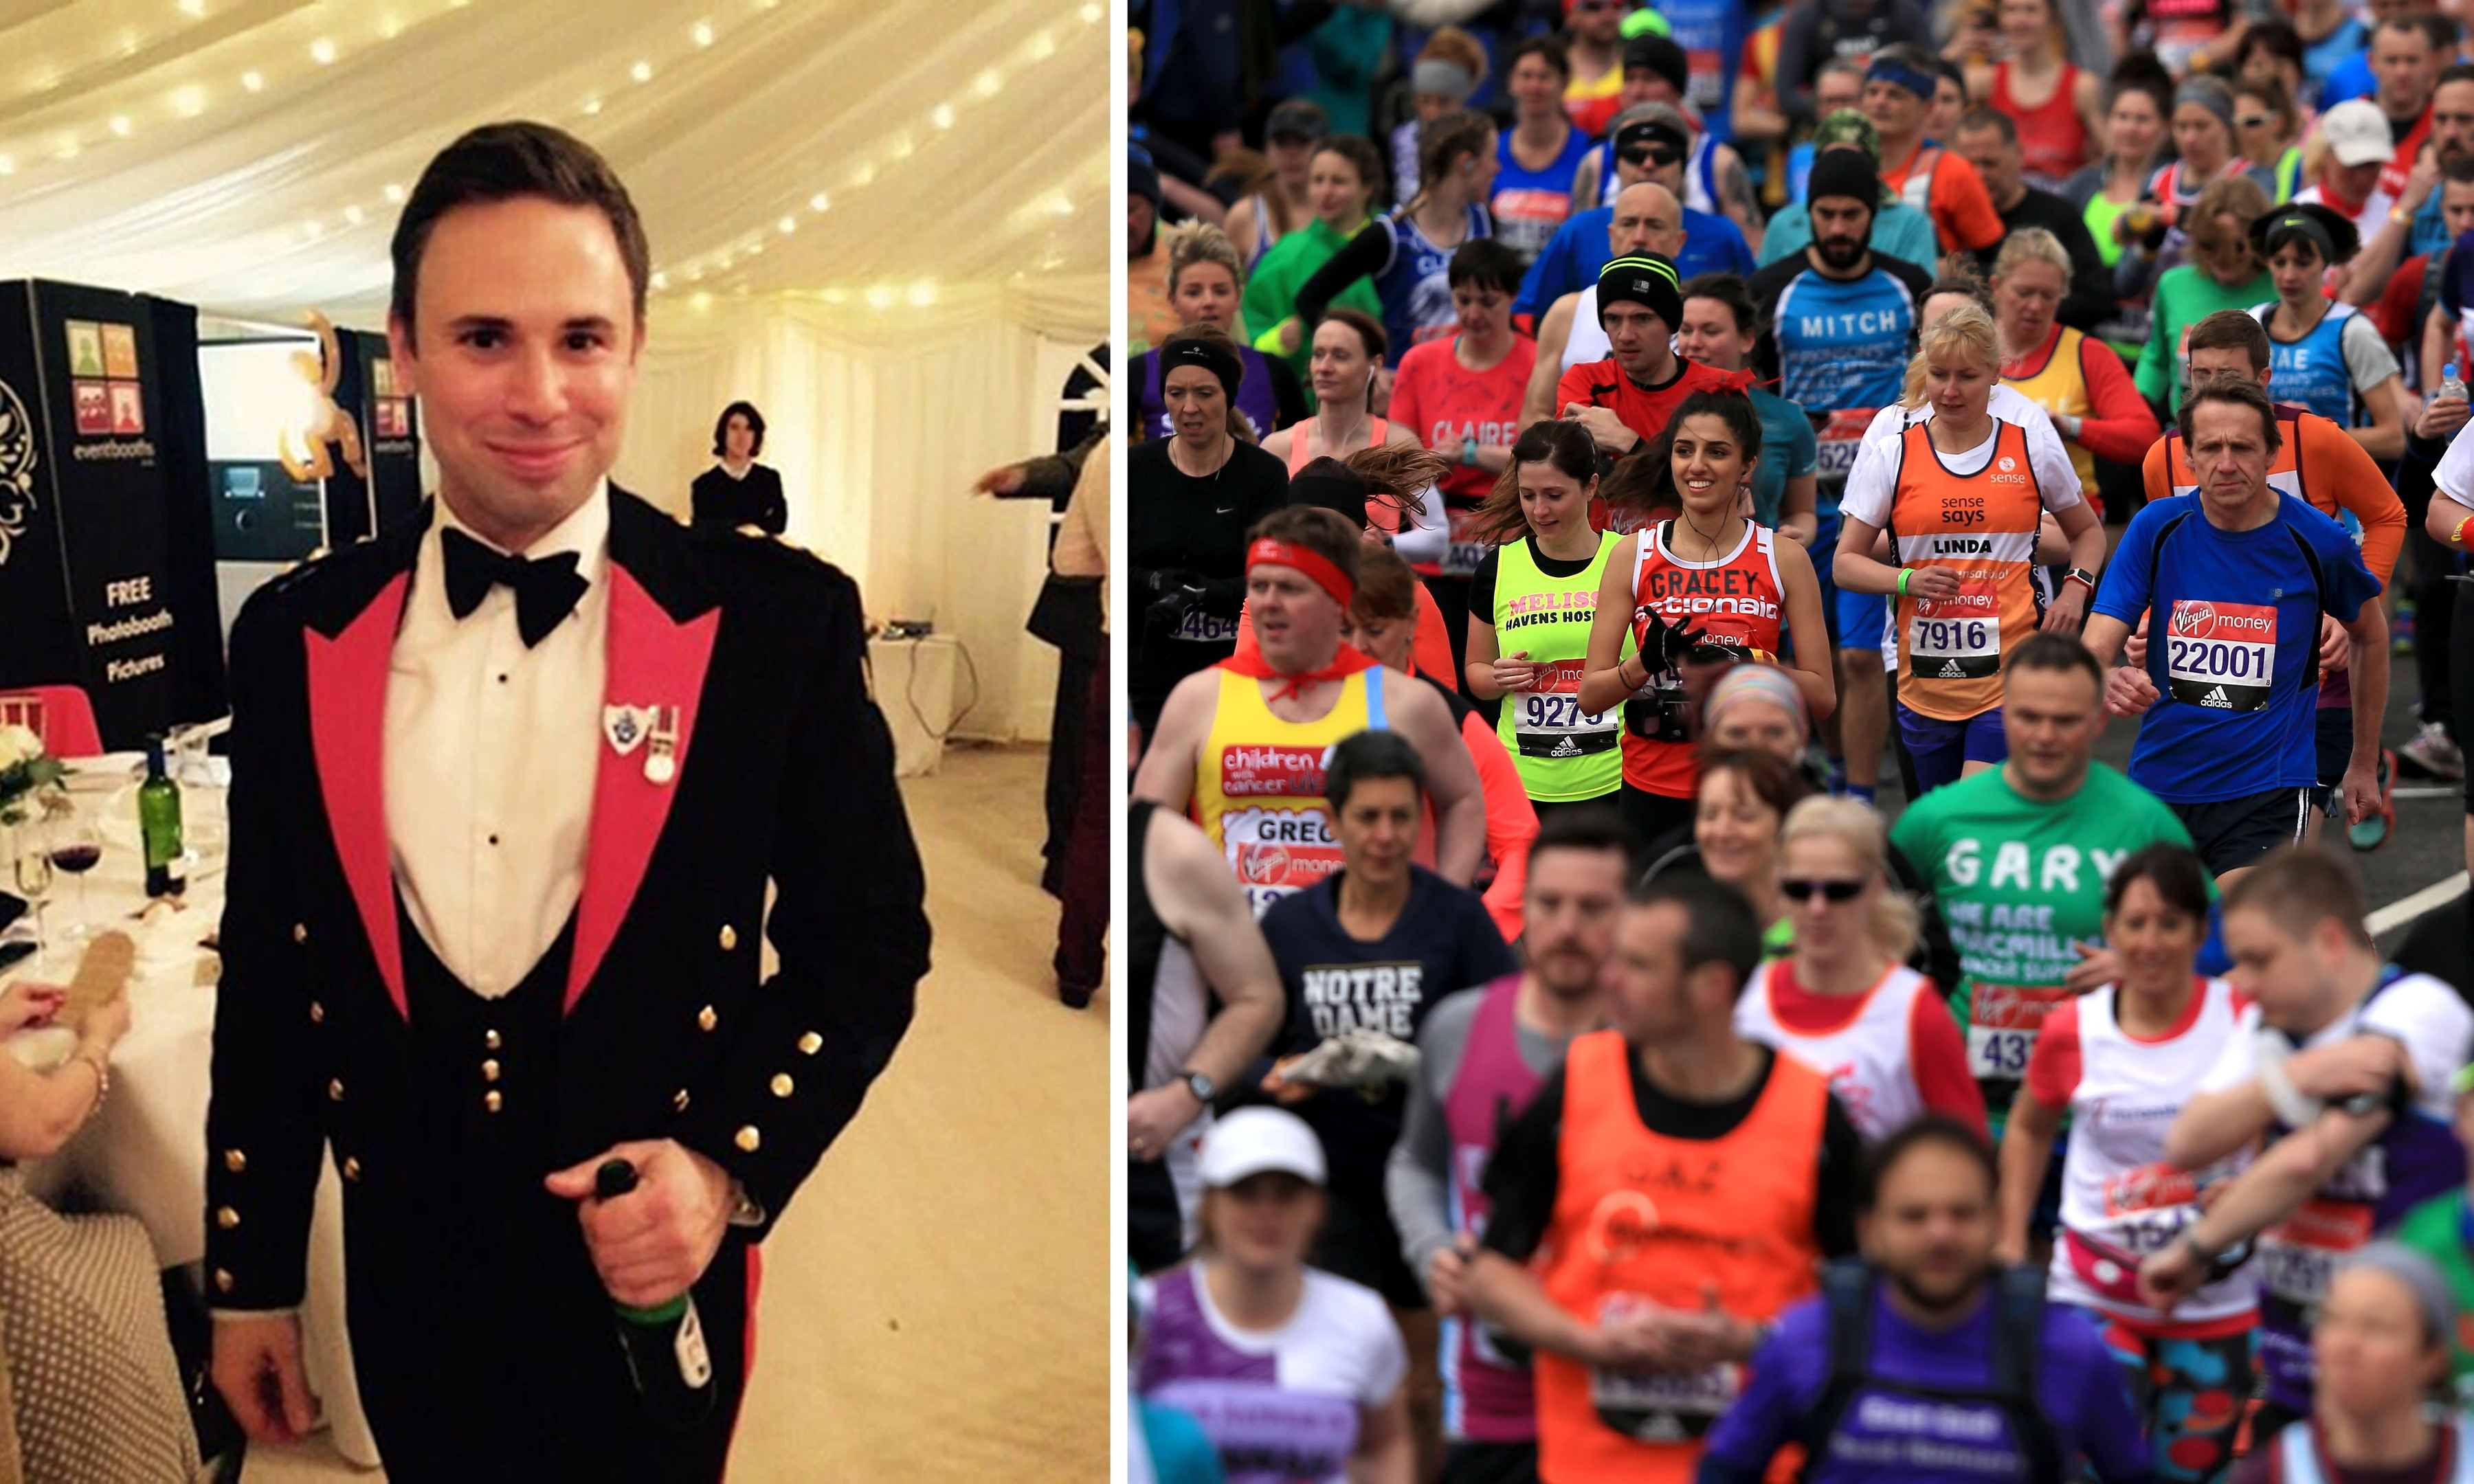 David Seath was one of the thousands who took part in the London Marathon.